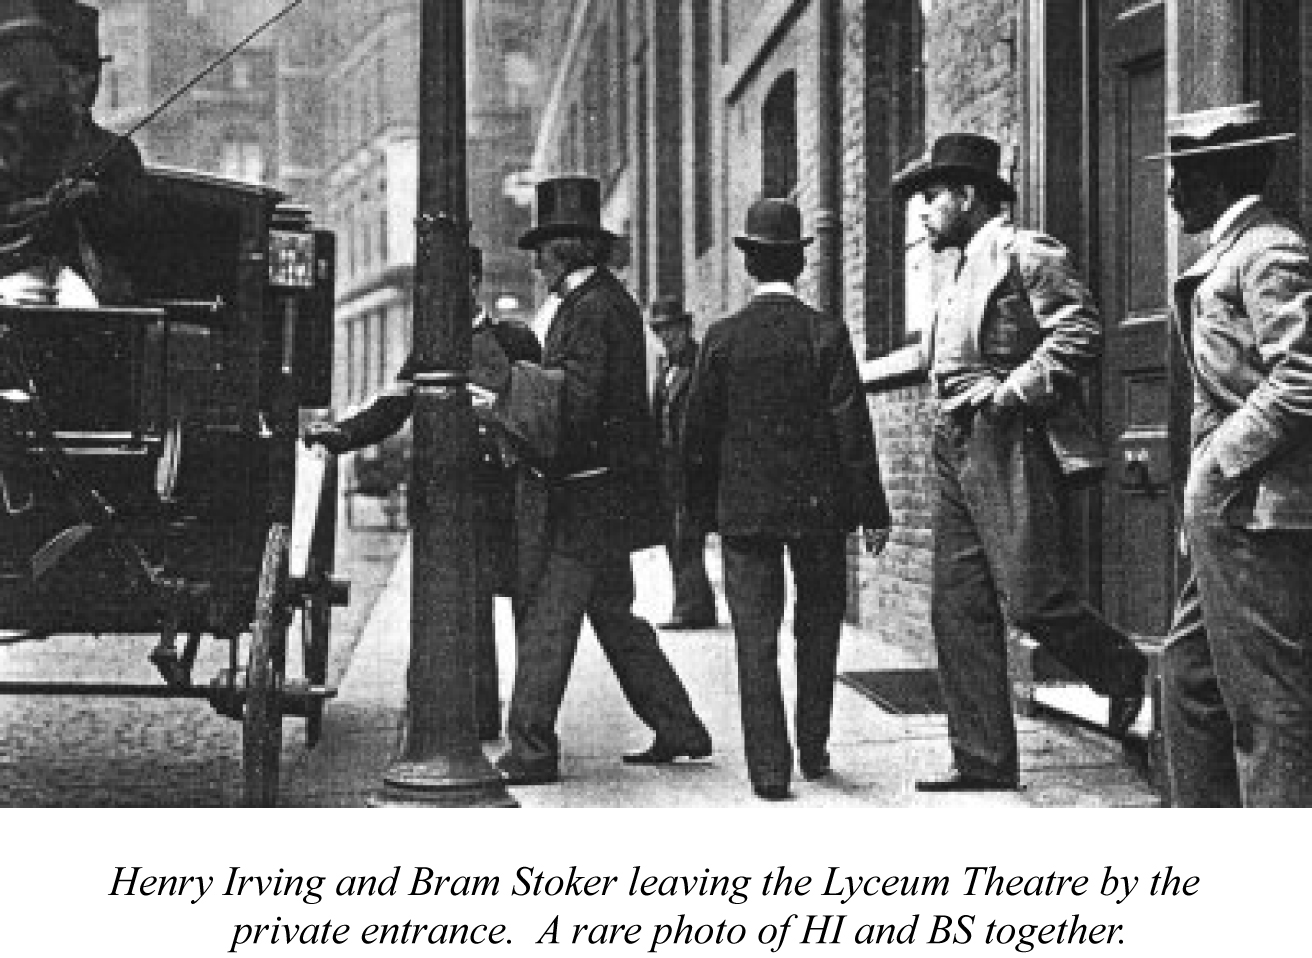 the life and works of bram stoker Series examining the life and work of irish novelist bram stoker.